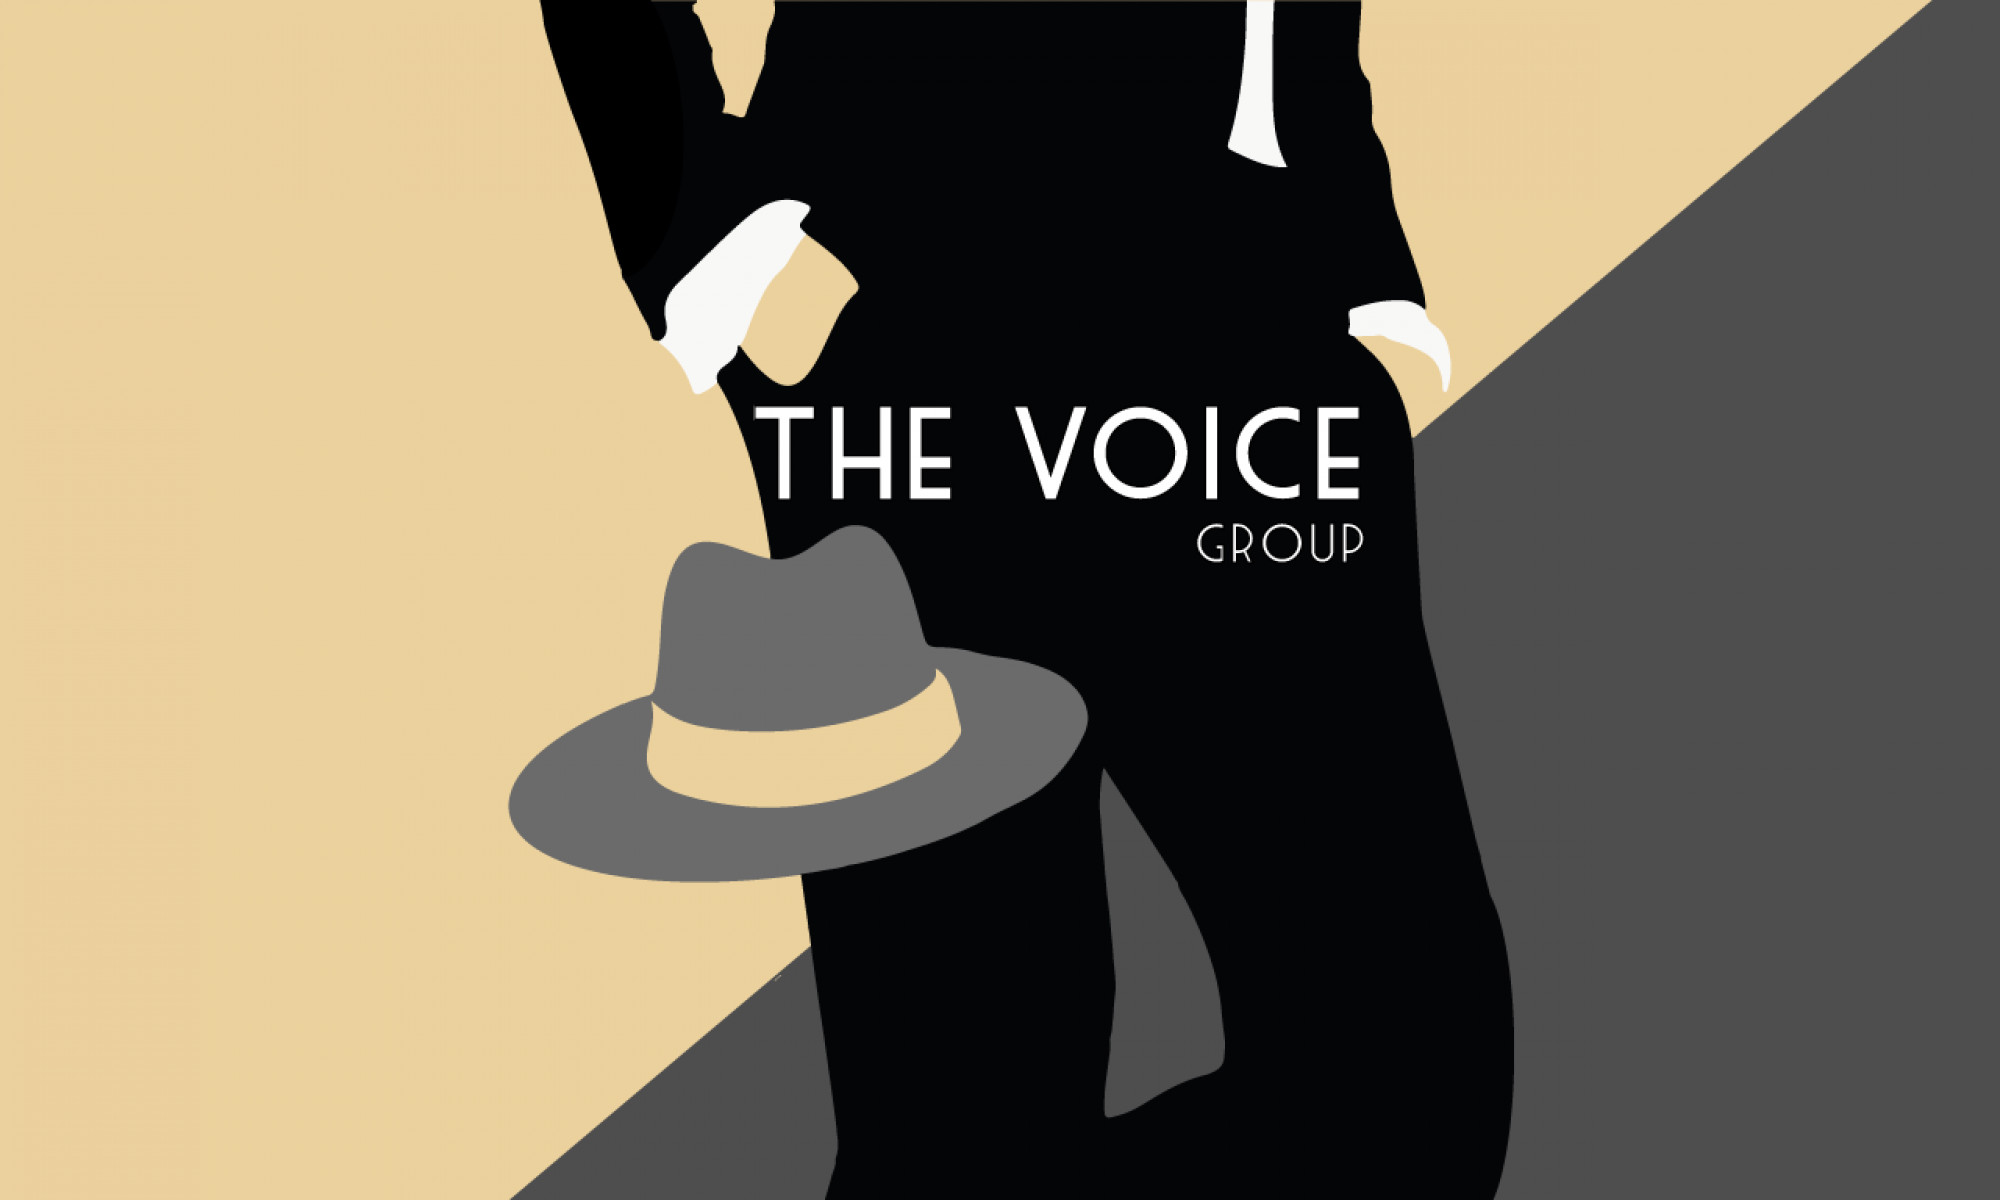 The Voice Group